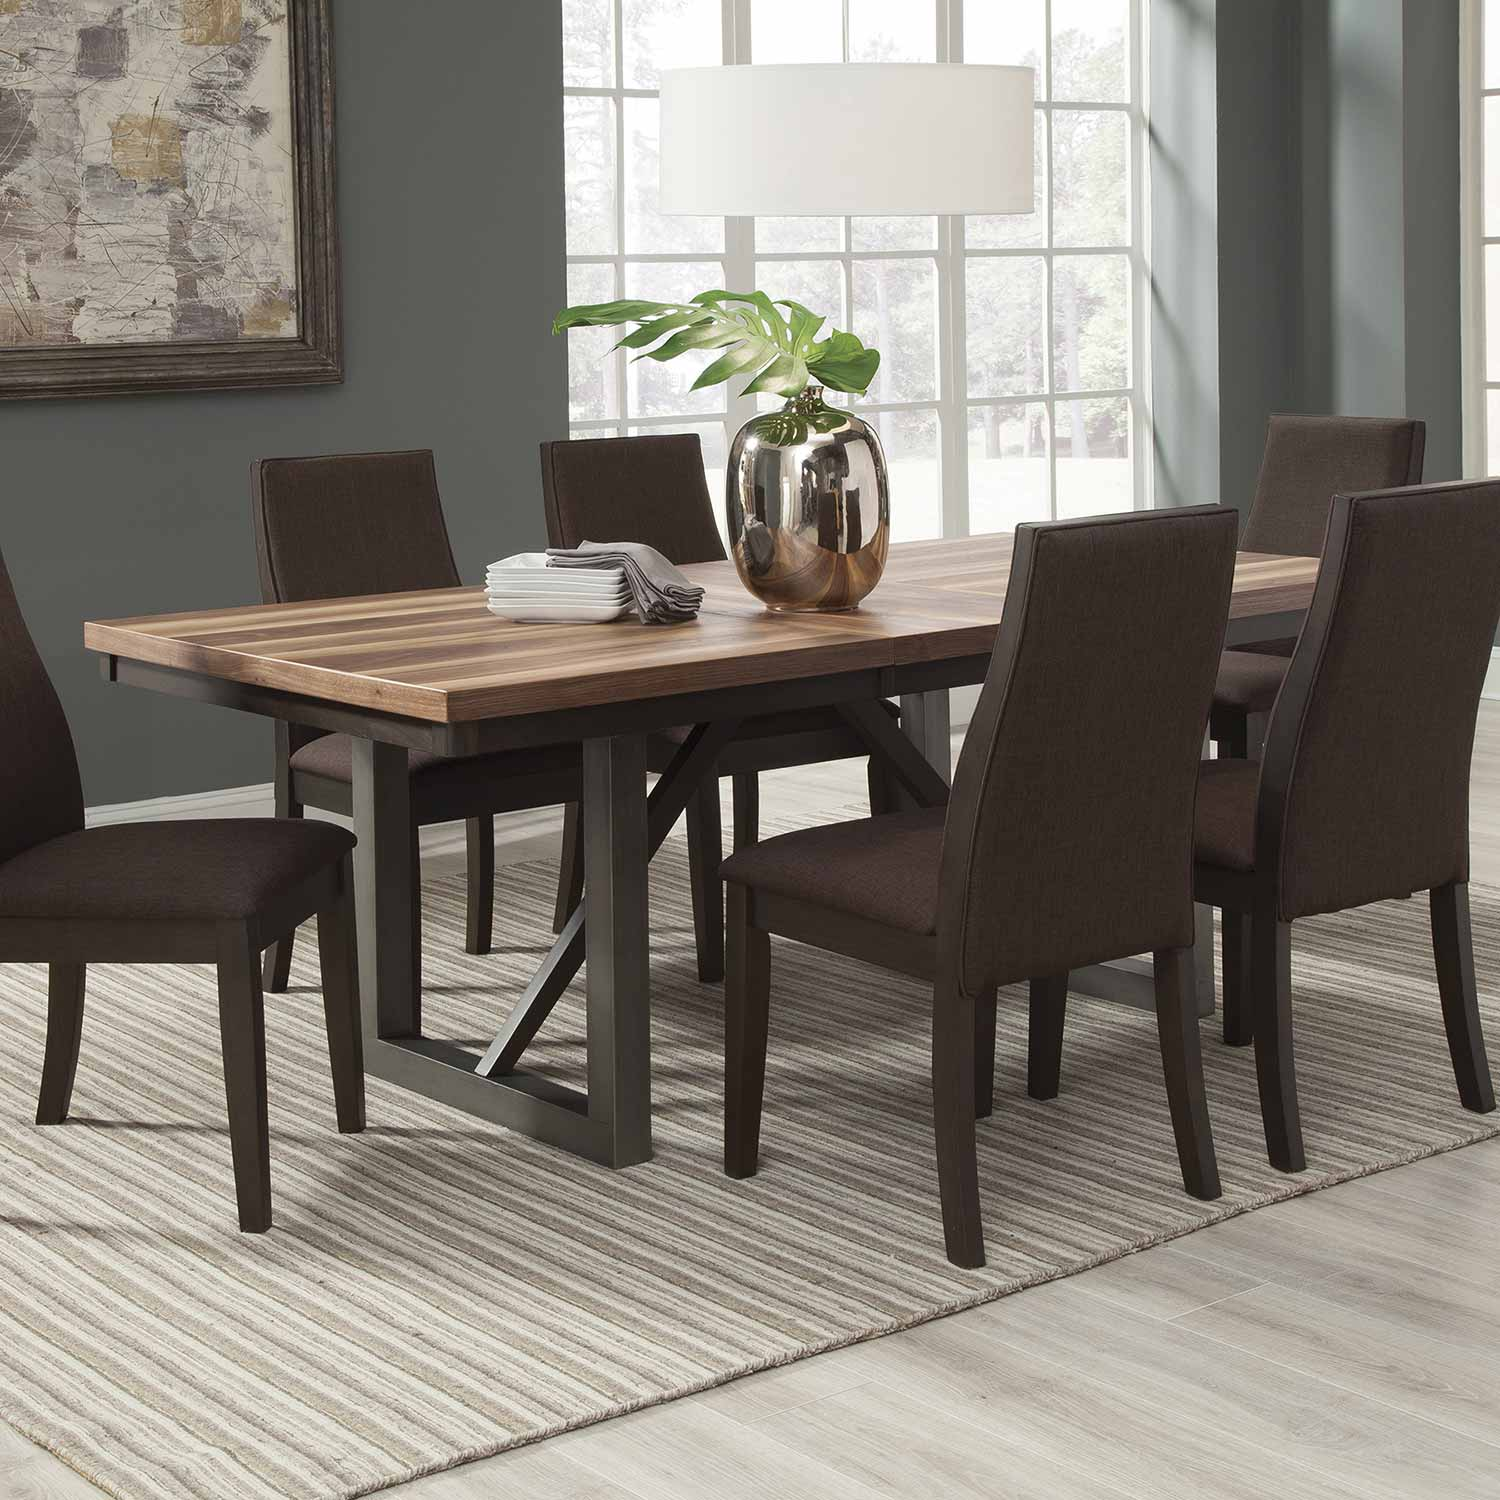 Coaster Lexton 101561 Rectangular Dining Table With 18: Coaster Spring Creek Rectangular Dining Table With Leaf